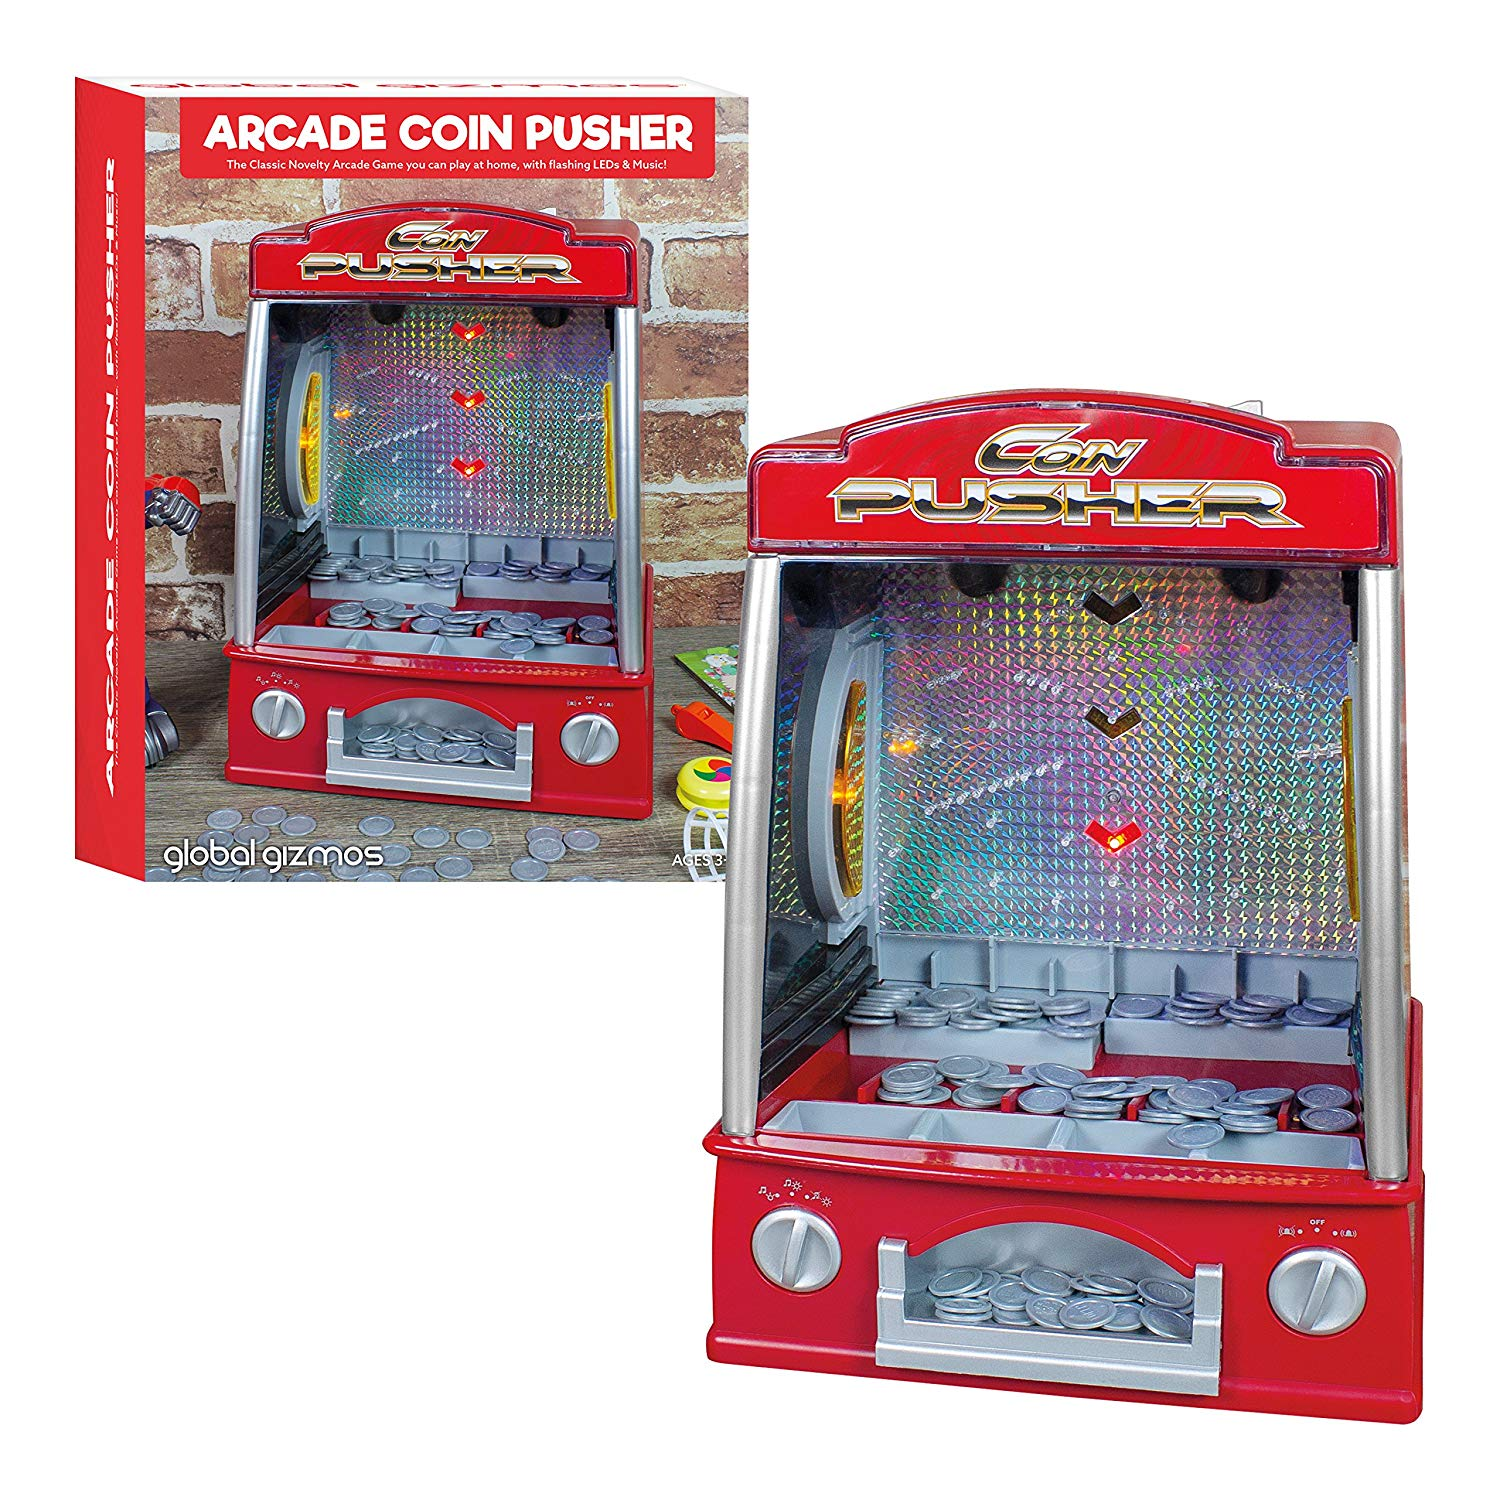 Electronic Games Kids Arcade Coin Pusher Retro Penny Falls Machine Christmas Gift Stocking Filler Games Electronic Games